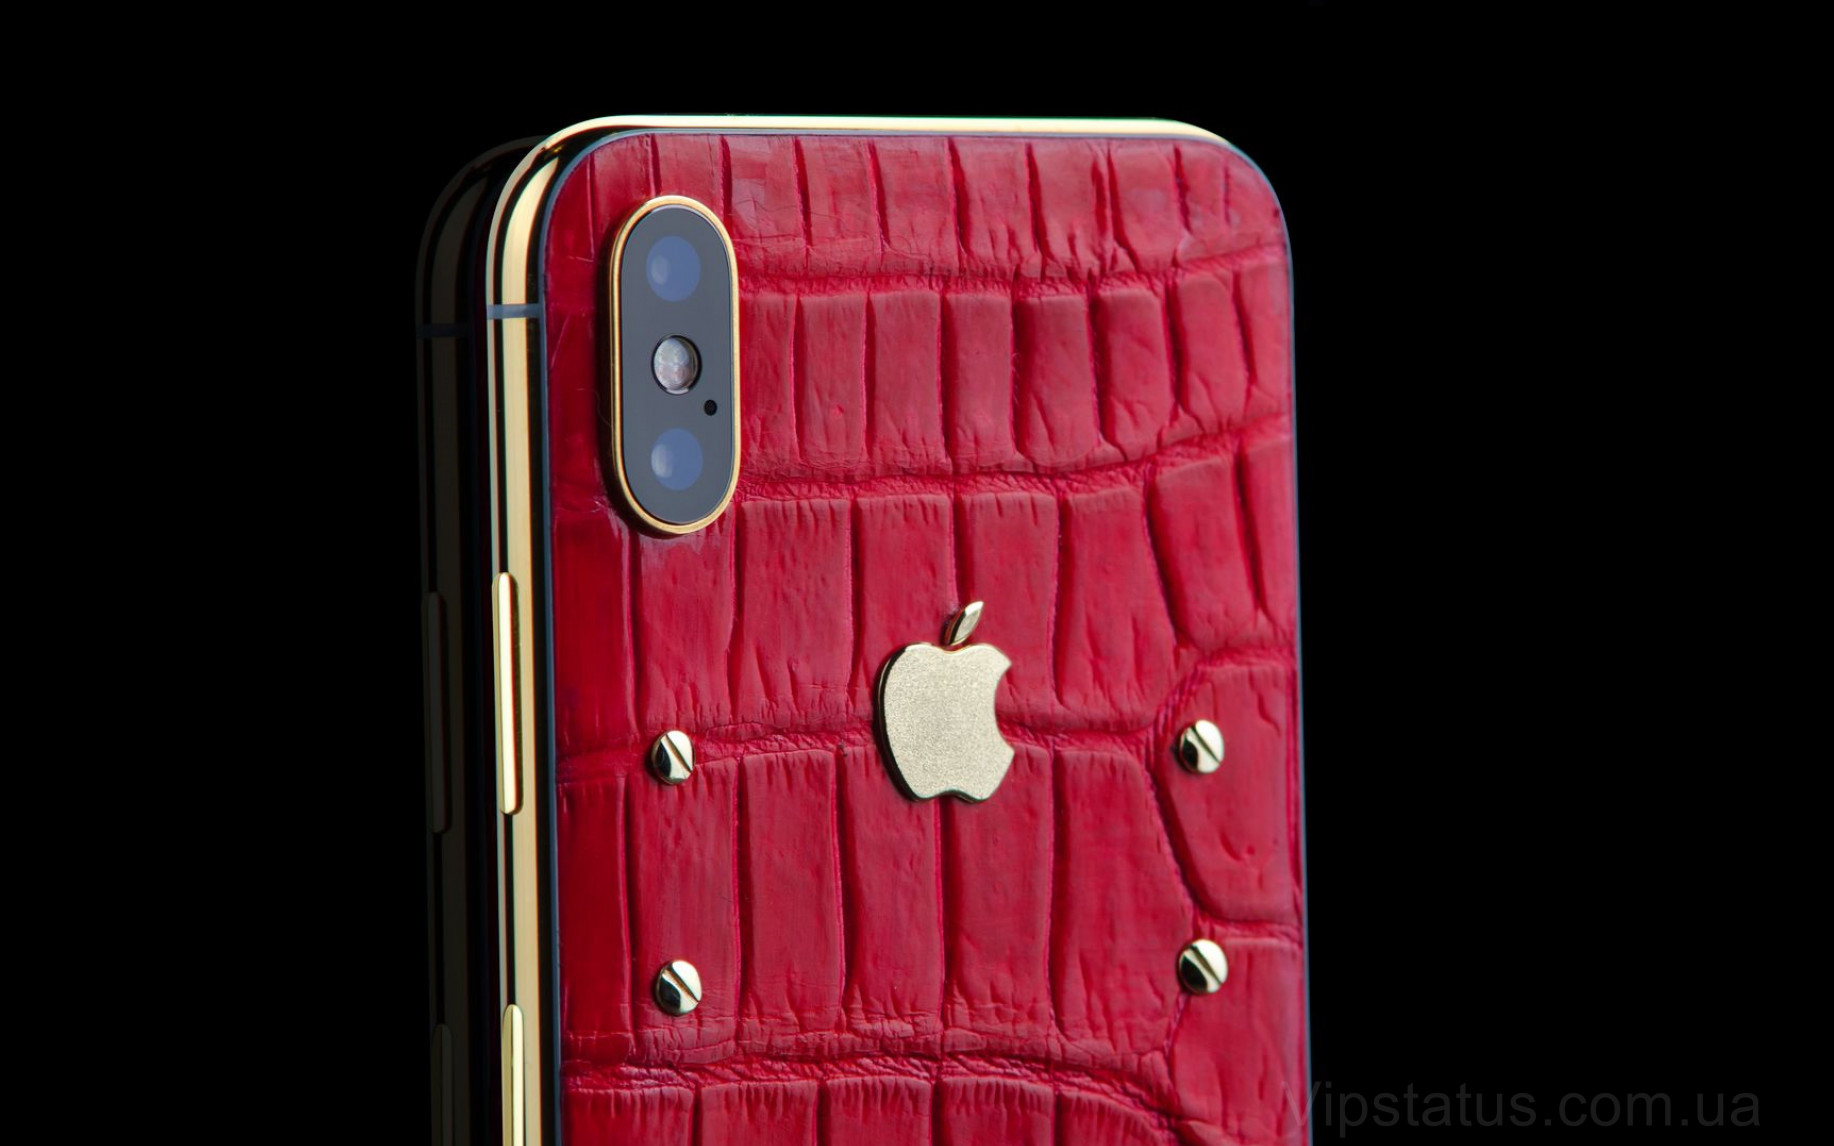 Элитный Red Princess IPHONE 11 PRO MAX 512 GB Red Princess IPHONE 11 PRO MAX 512 GB изображение 4